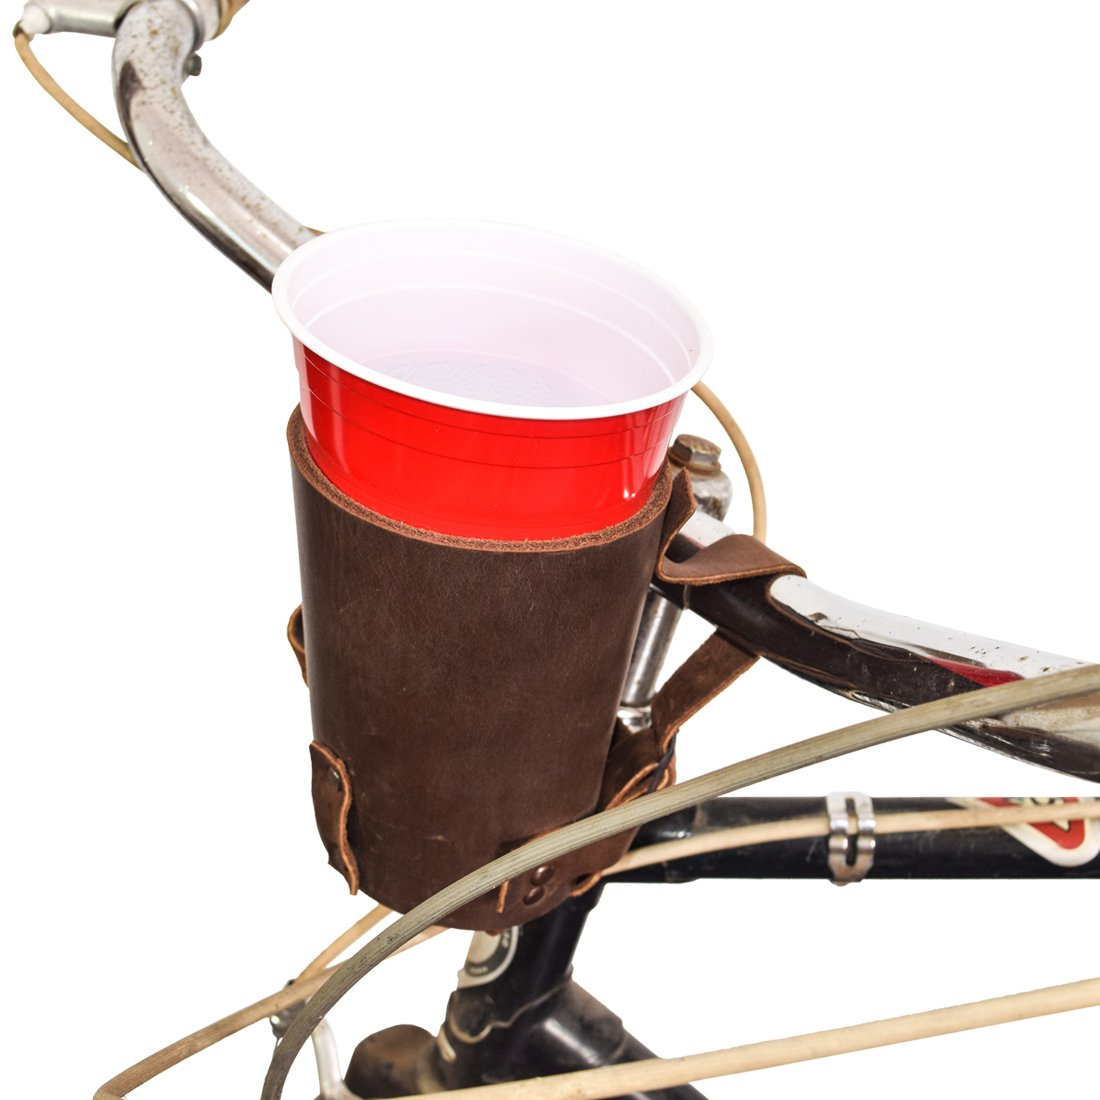 Hide & Drink Cruzy Kuzy Thick Leather Bike Cup Holder Handmade by Bourbon Brown